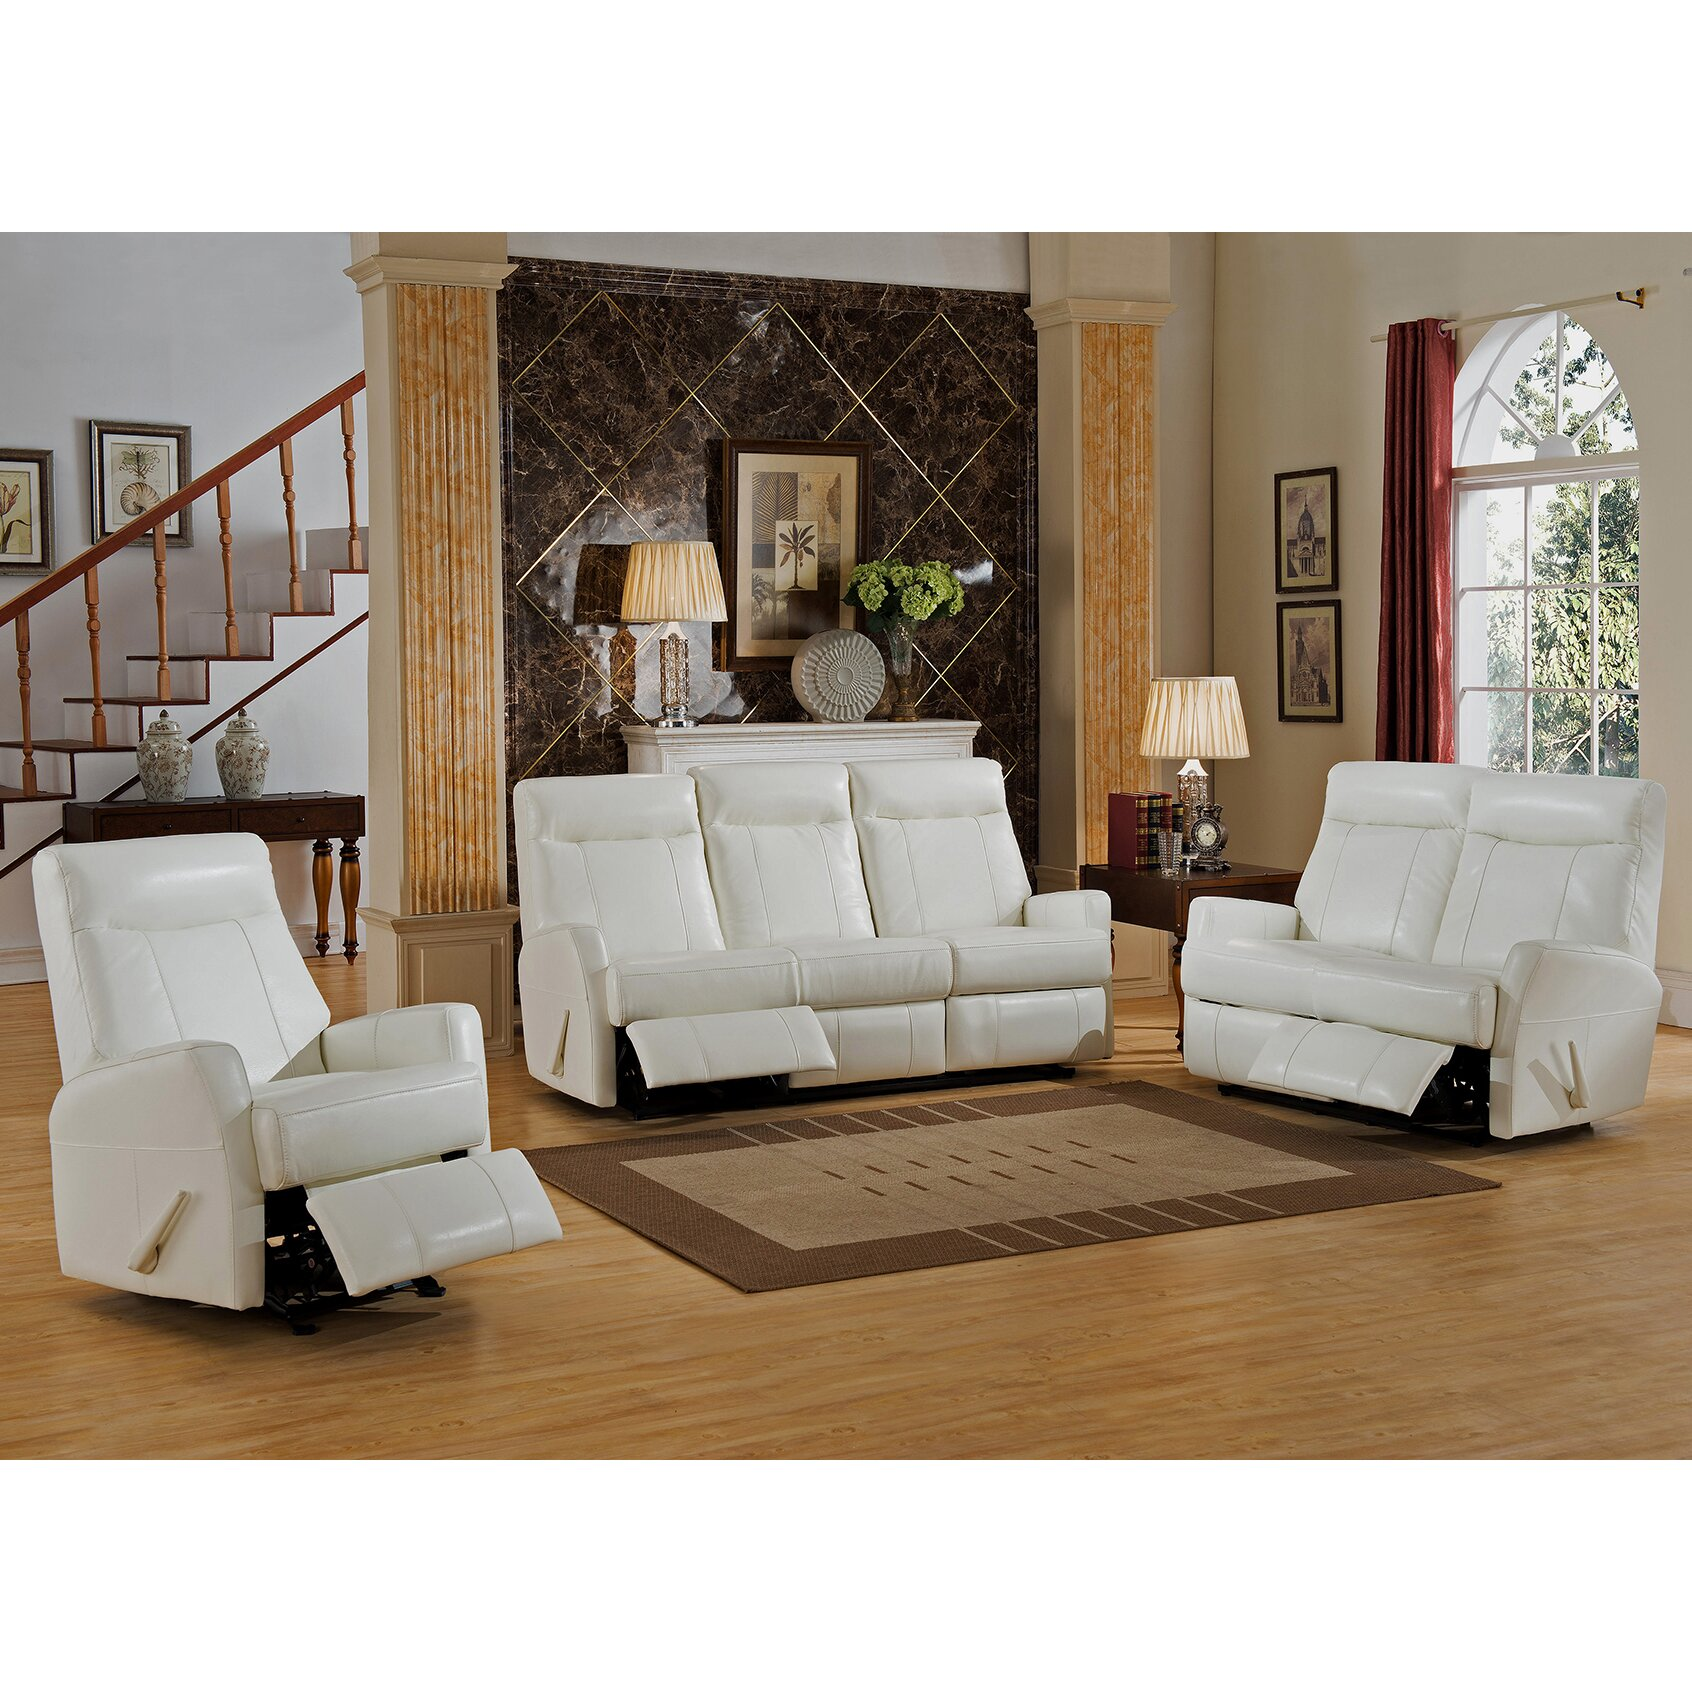 Amax Toledo 3 Piece Leather Living Room Set  Wayfair.ca